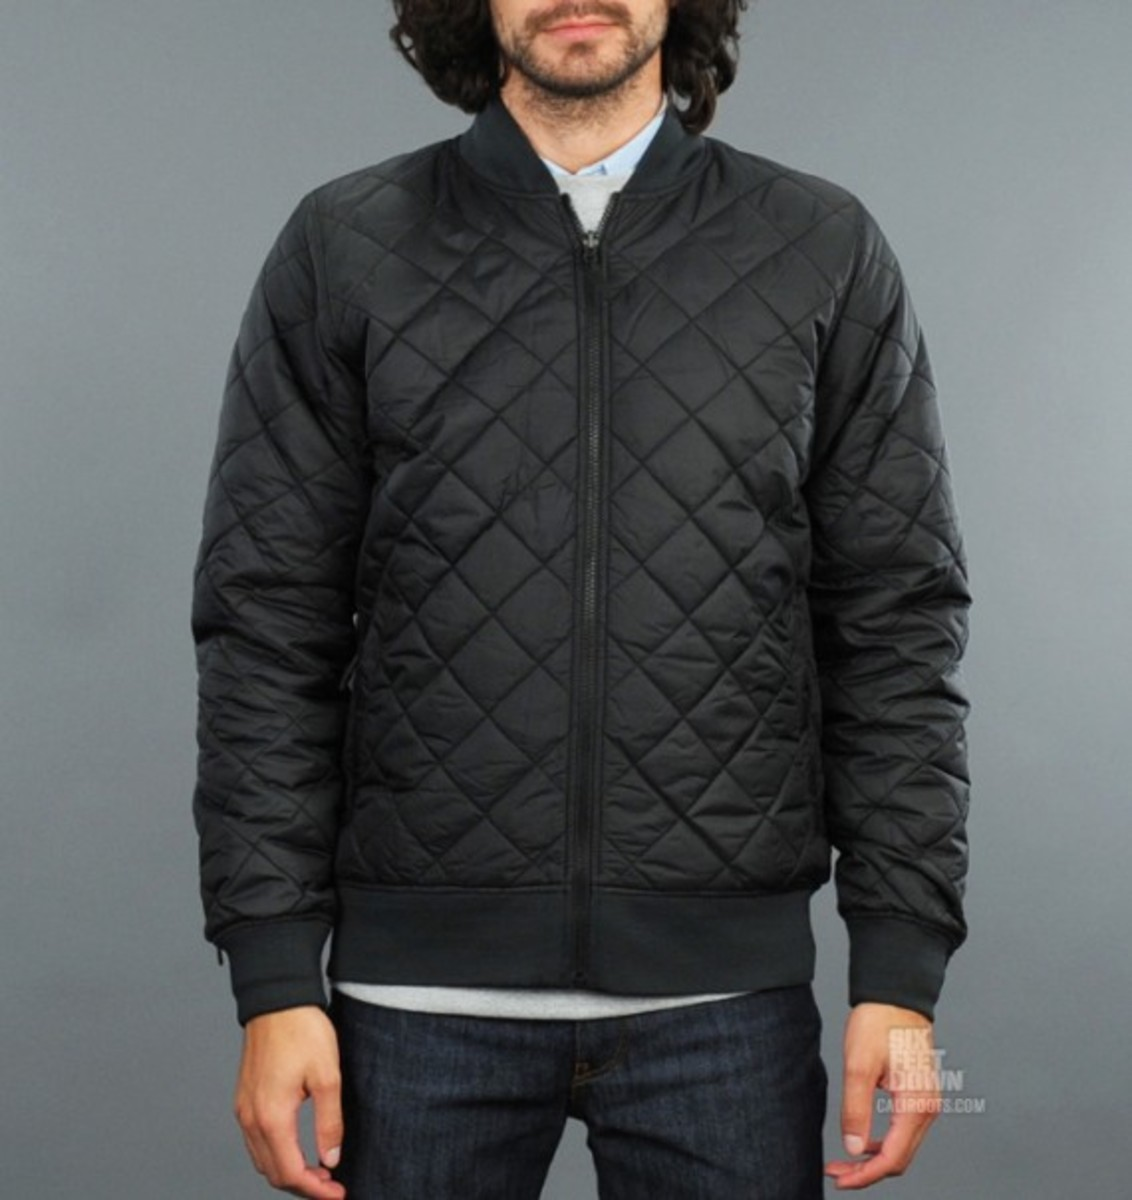 nike-sportswear-nsw-m65-storm-fit-3-in-1-jacket-10